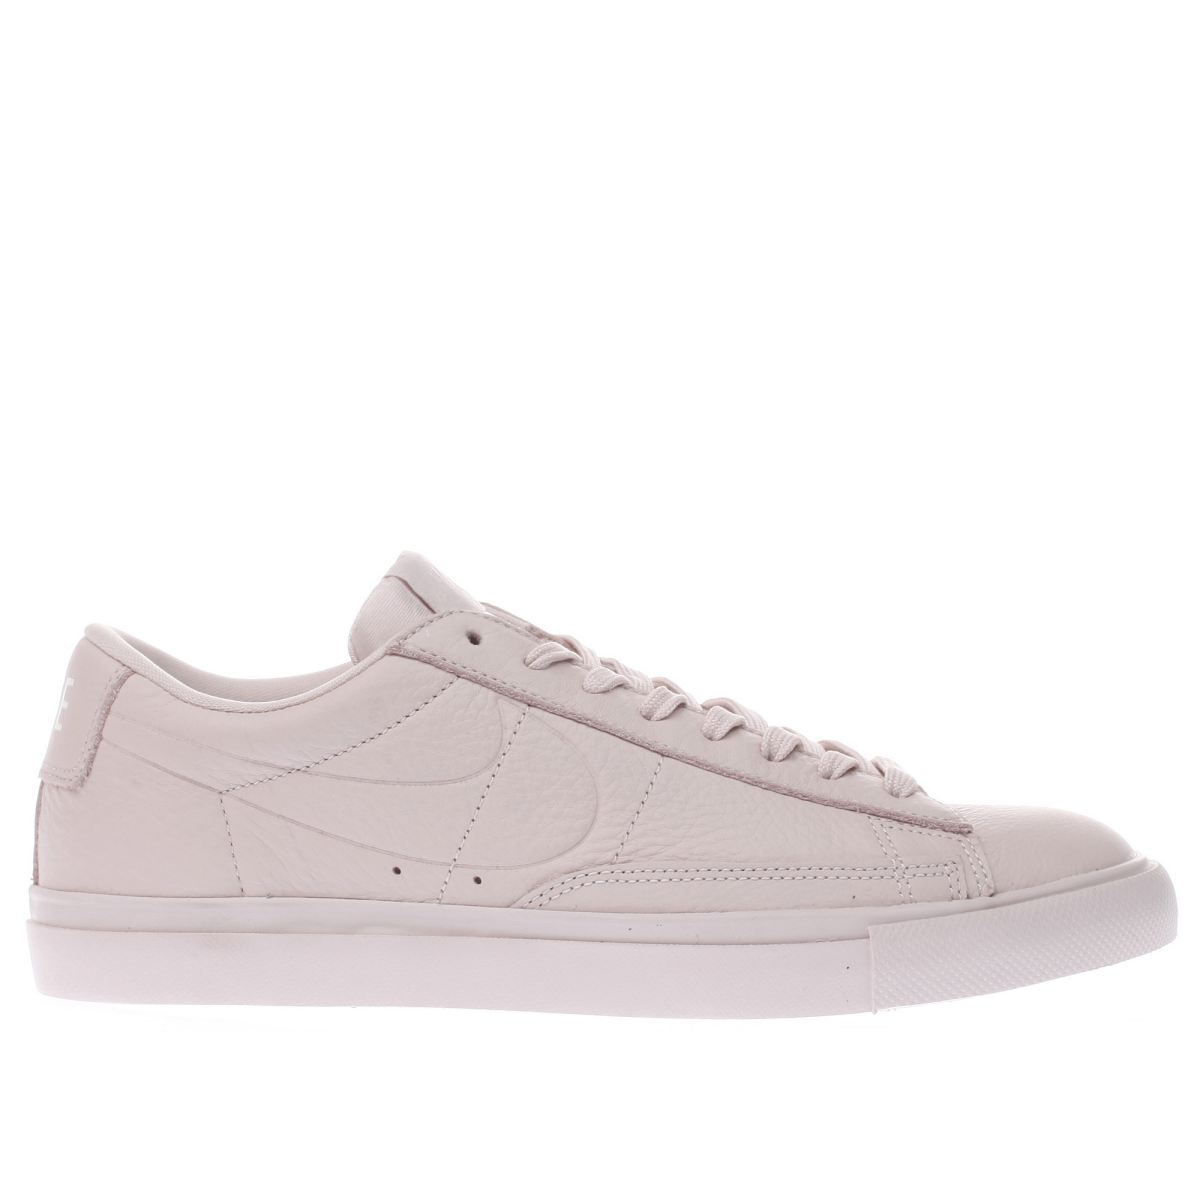 nike pale pink blazer low trainers